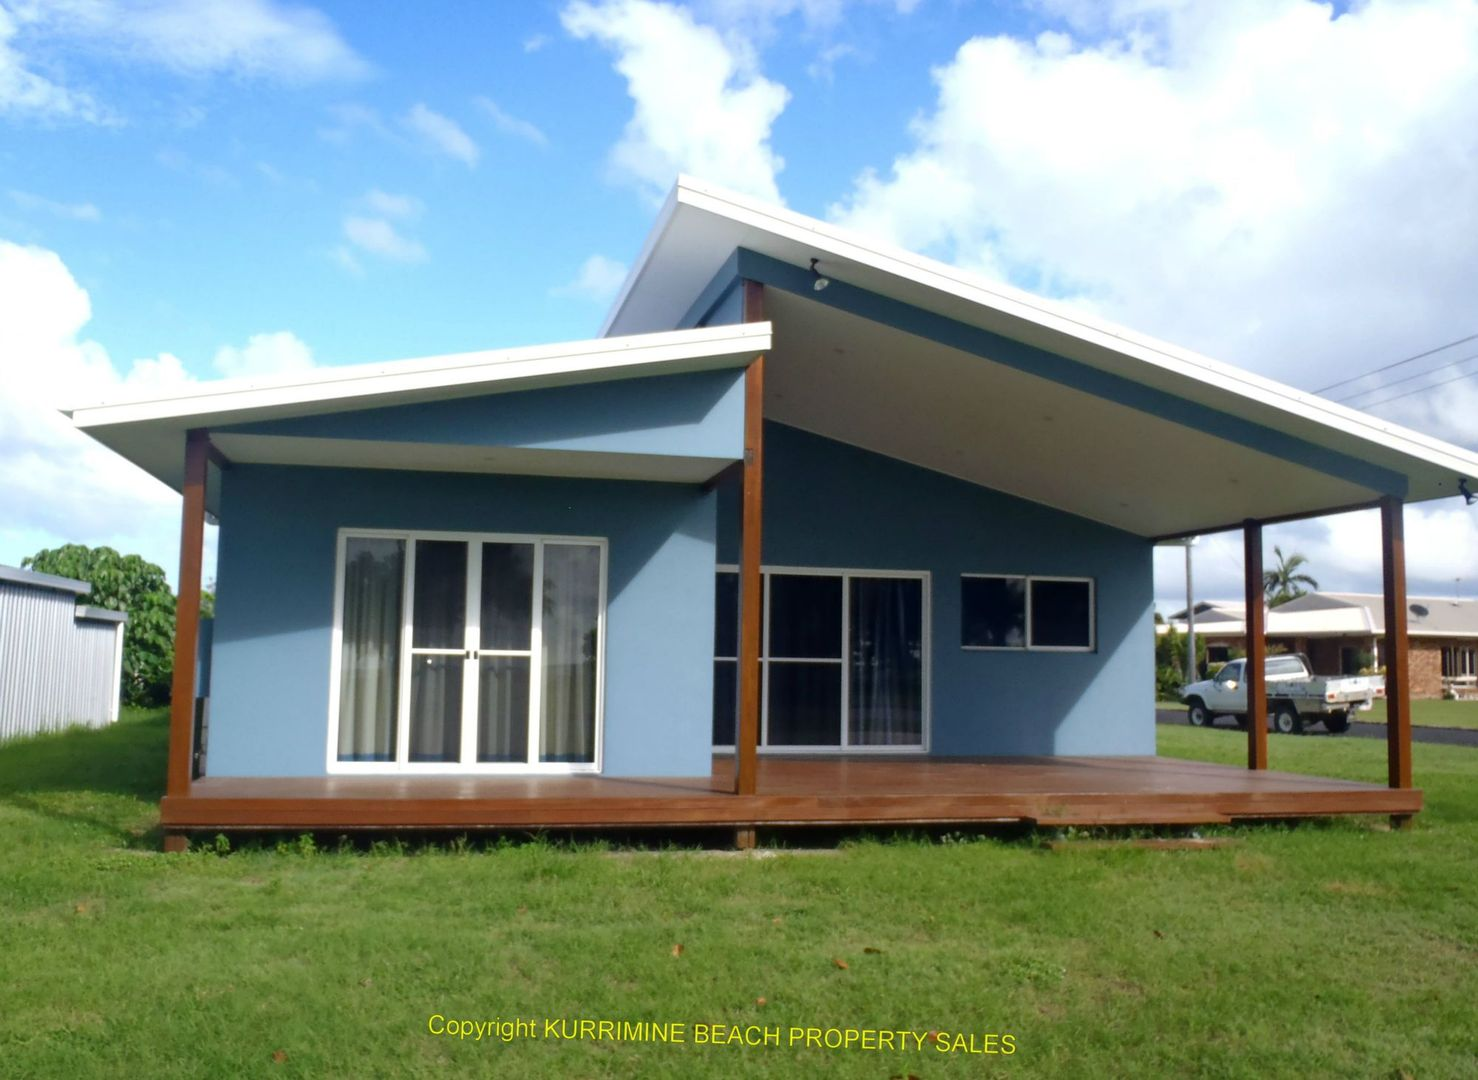 34 Jacobs Road, Kurrimine Beach QLD 4871, Image 1